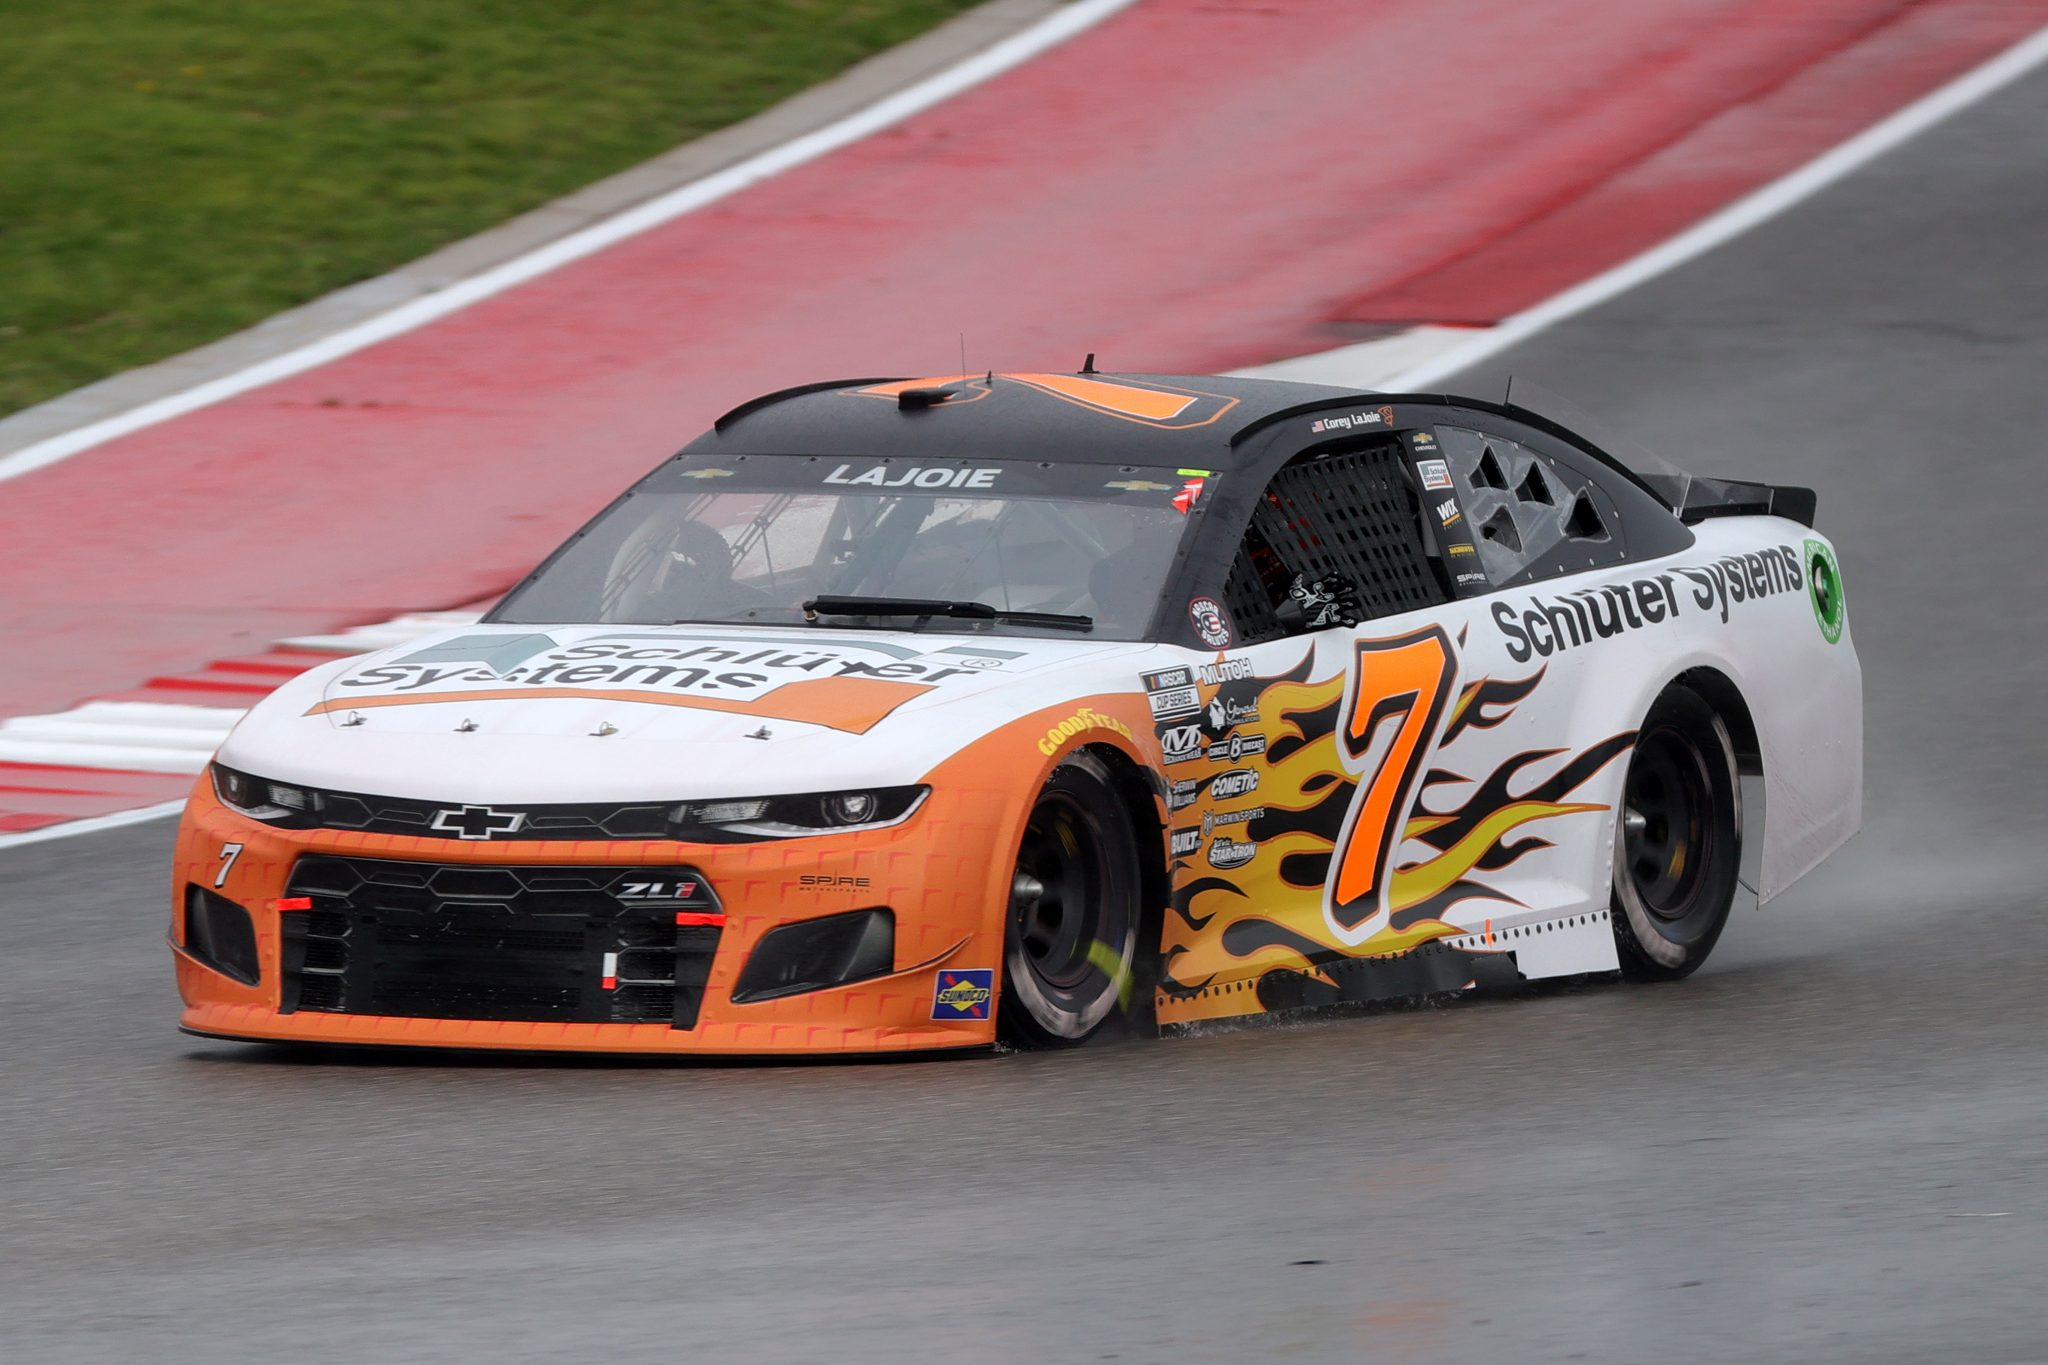 AUSTIN, TEXAS - MAY 23: Corey LaJoie, driver of the #7 Schluter Systems Chevrolet, drives during the NASCAR Cup Series EchoPark Texas Grand Prix at Circuit of The Americas on May 23, 2021 in Austin, Texas. (Photo by Carmen Mandato/Getty Images)   Getty Images